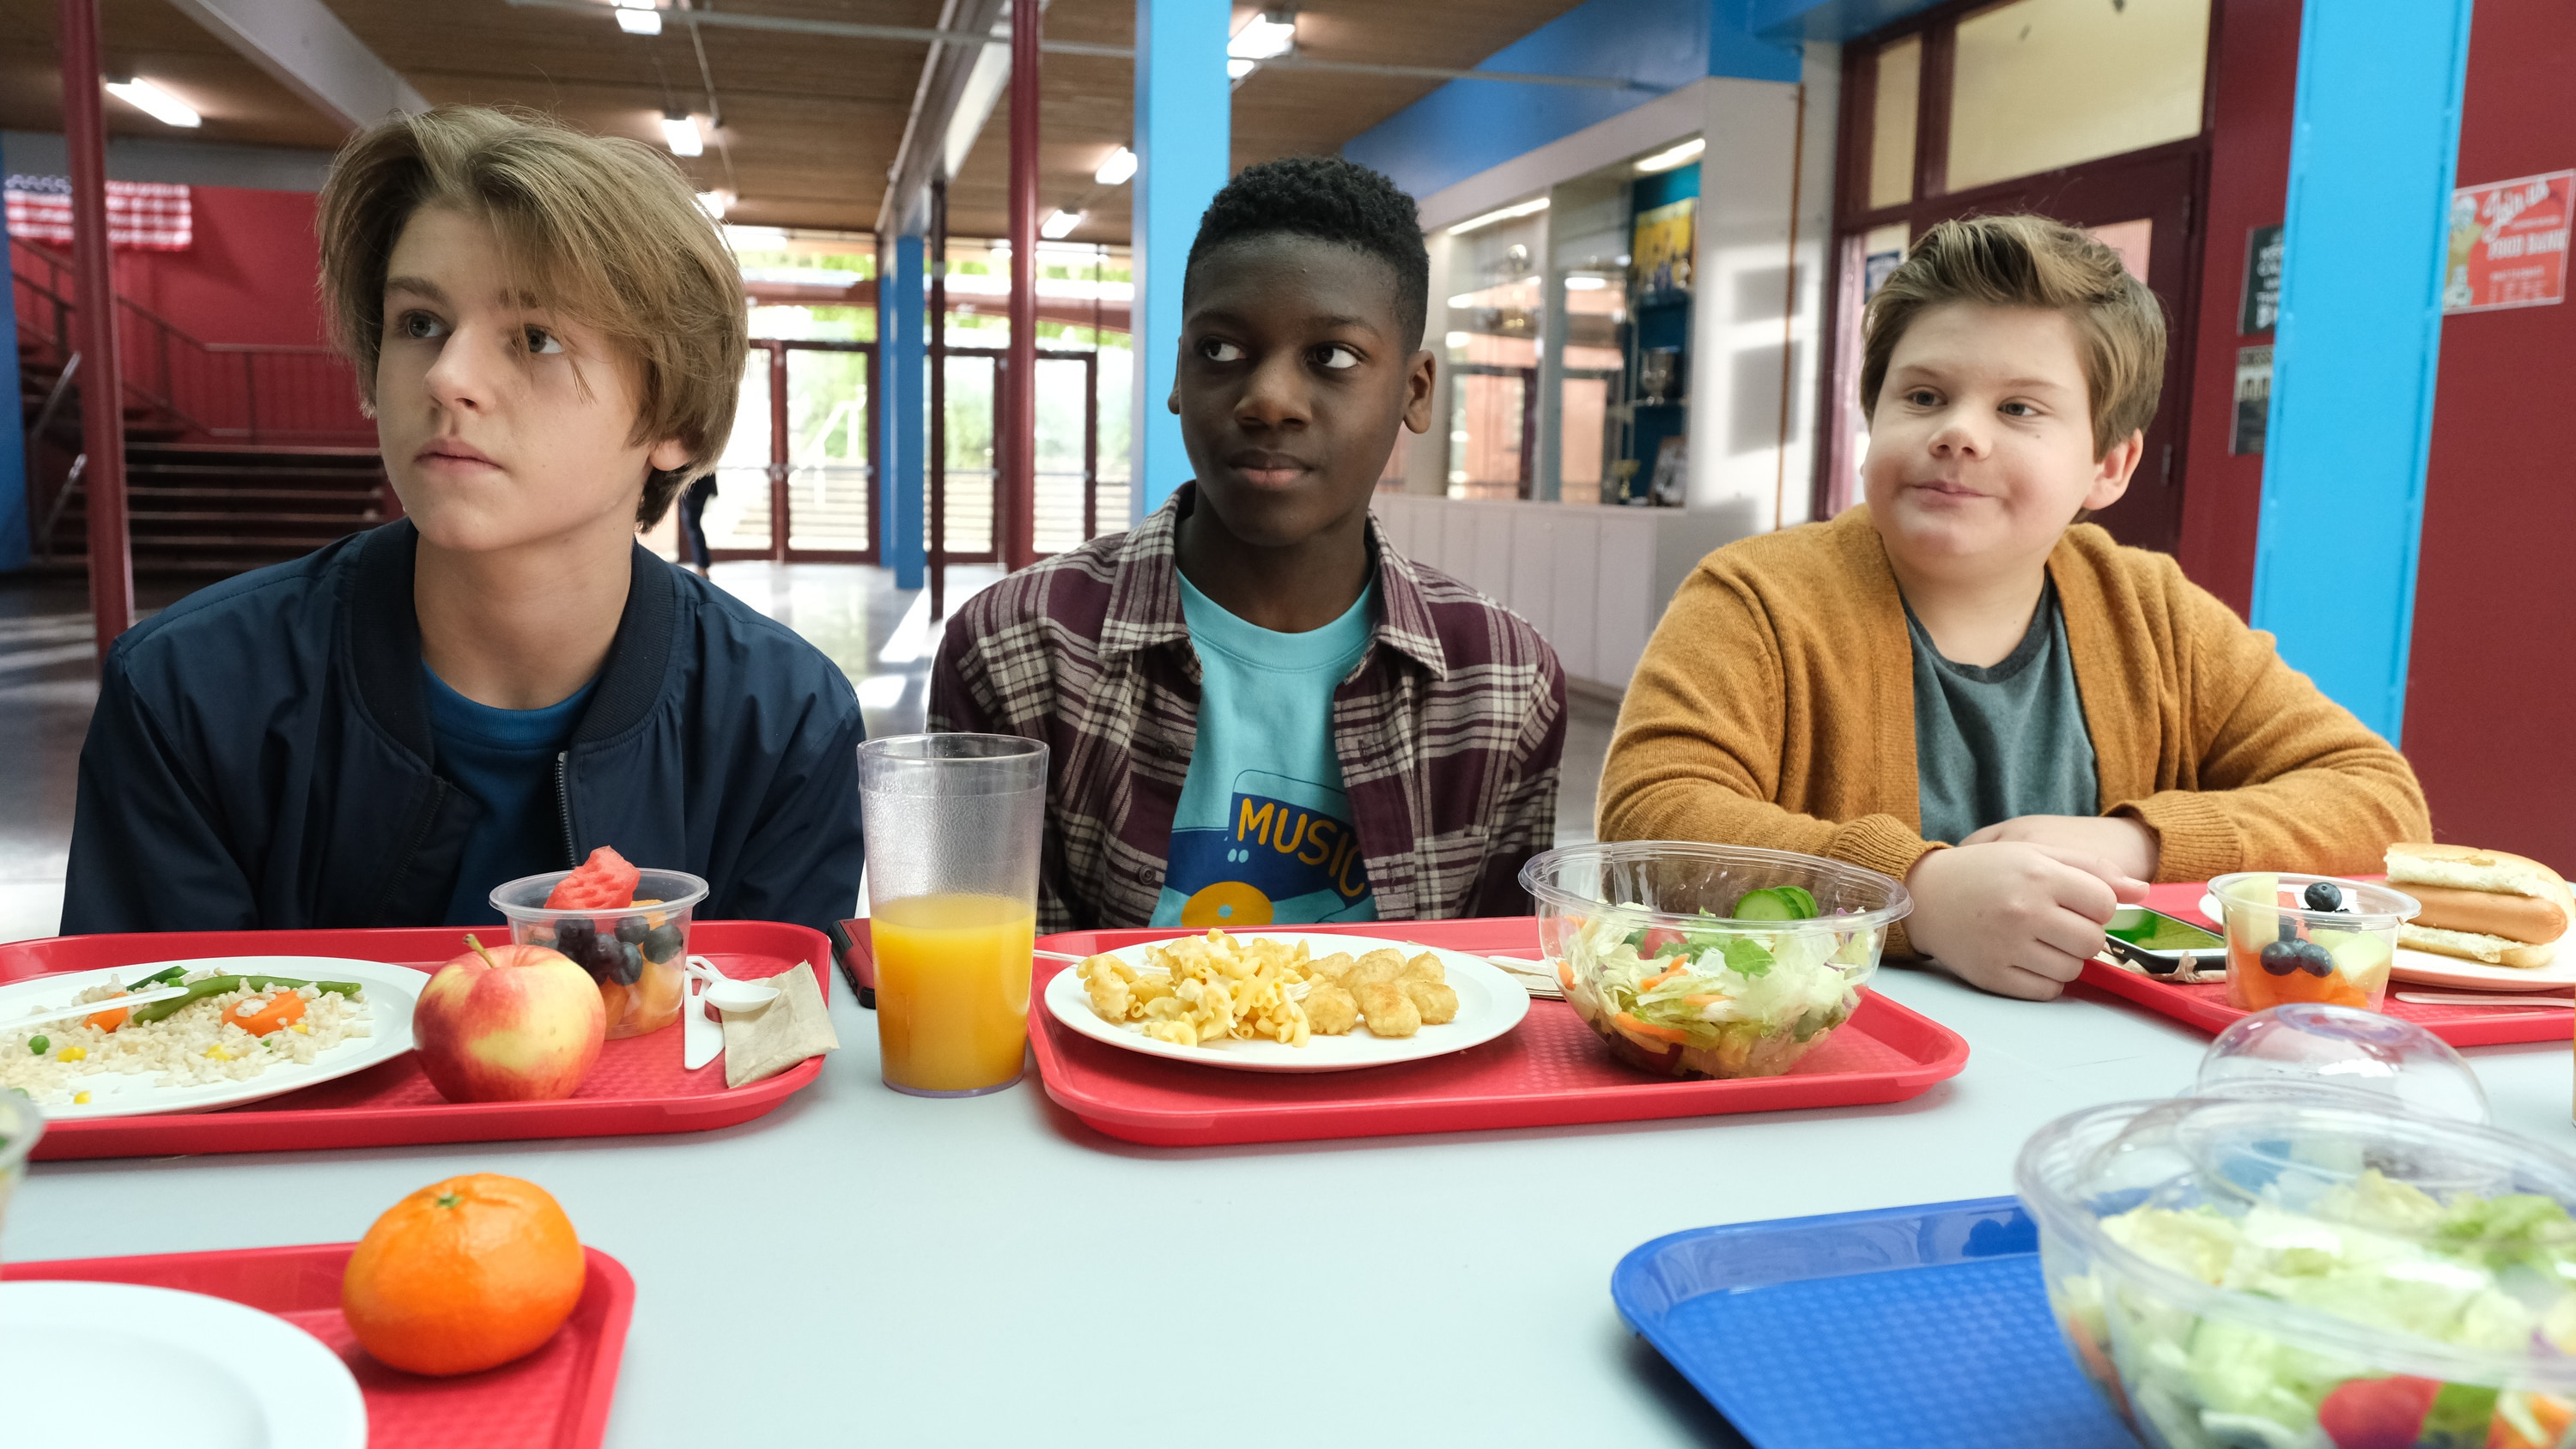 """THE MIGHTY DUCKS: GAME CHANGERS - """"Cherry Picker"""" - Evan's rocker dad unexpectedly shows up, complicating things for Evan, Alex, and even Bombay.  (Disney/Liane Hentscher) KIEFER O'REILLY, DE'JON WATTS, MAXWELL SIMPKINS"""